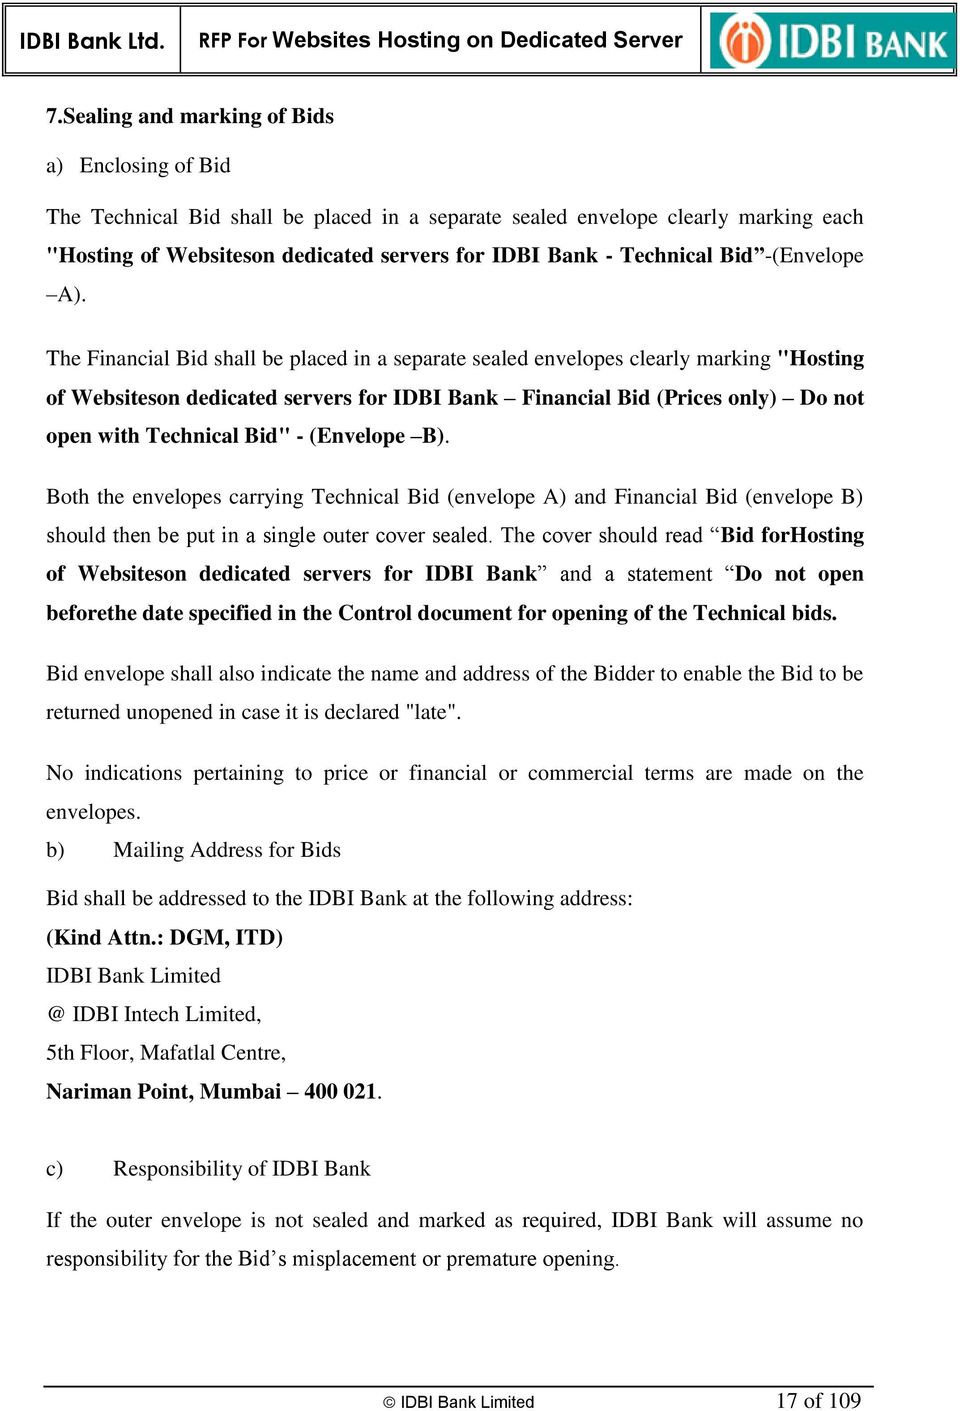 "The Financial Bid shall be placed in a separate sealed envelopes clearly marking ""Hosting of Websiteson dedicated servers for IDBI Bank Financial Bid (Prices only) Do not open with Technical Bid"" -"